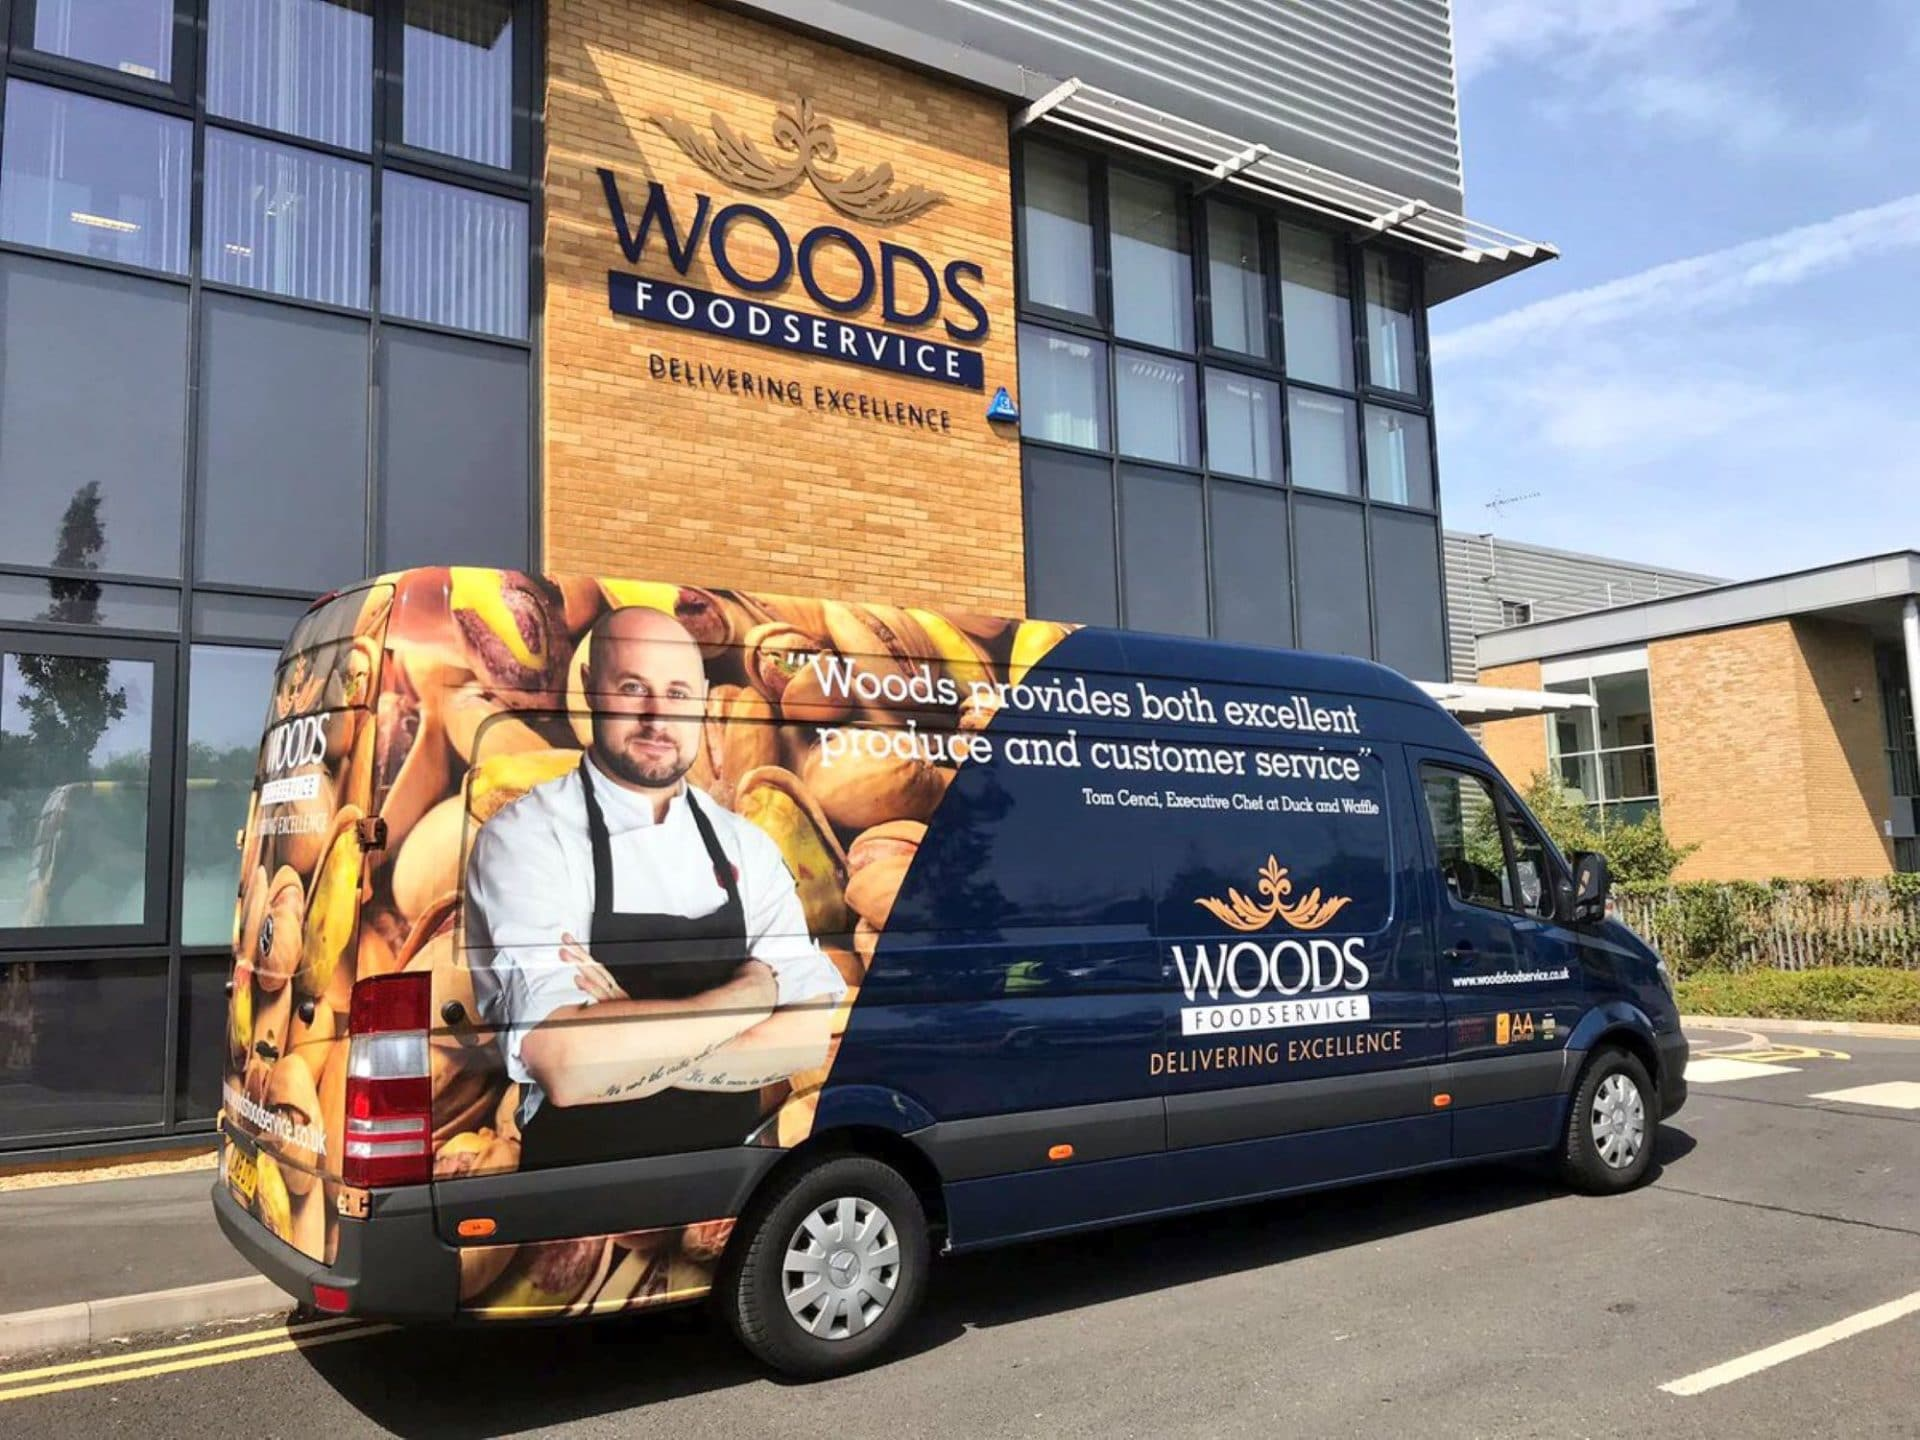 Woods Food Service van